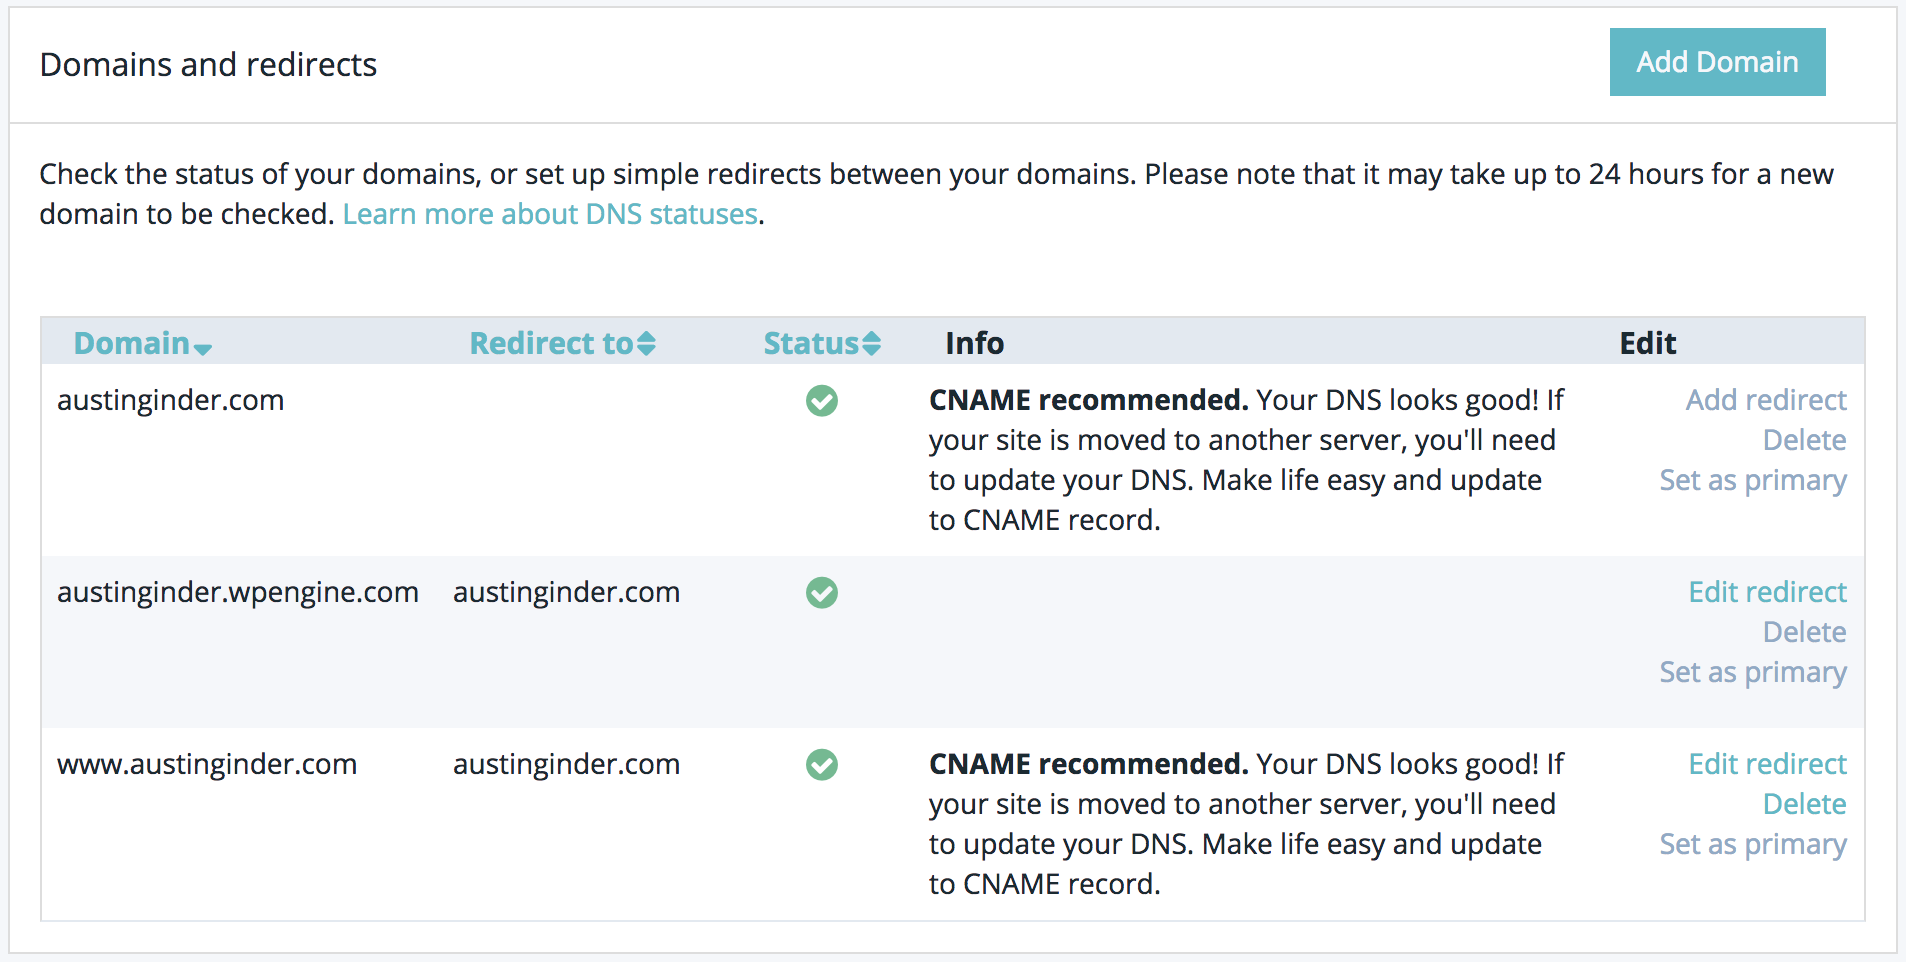 Avoiding HTTP double redirects with WP Engine